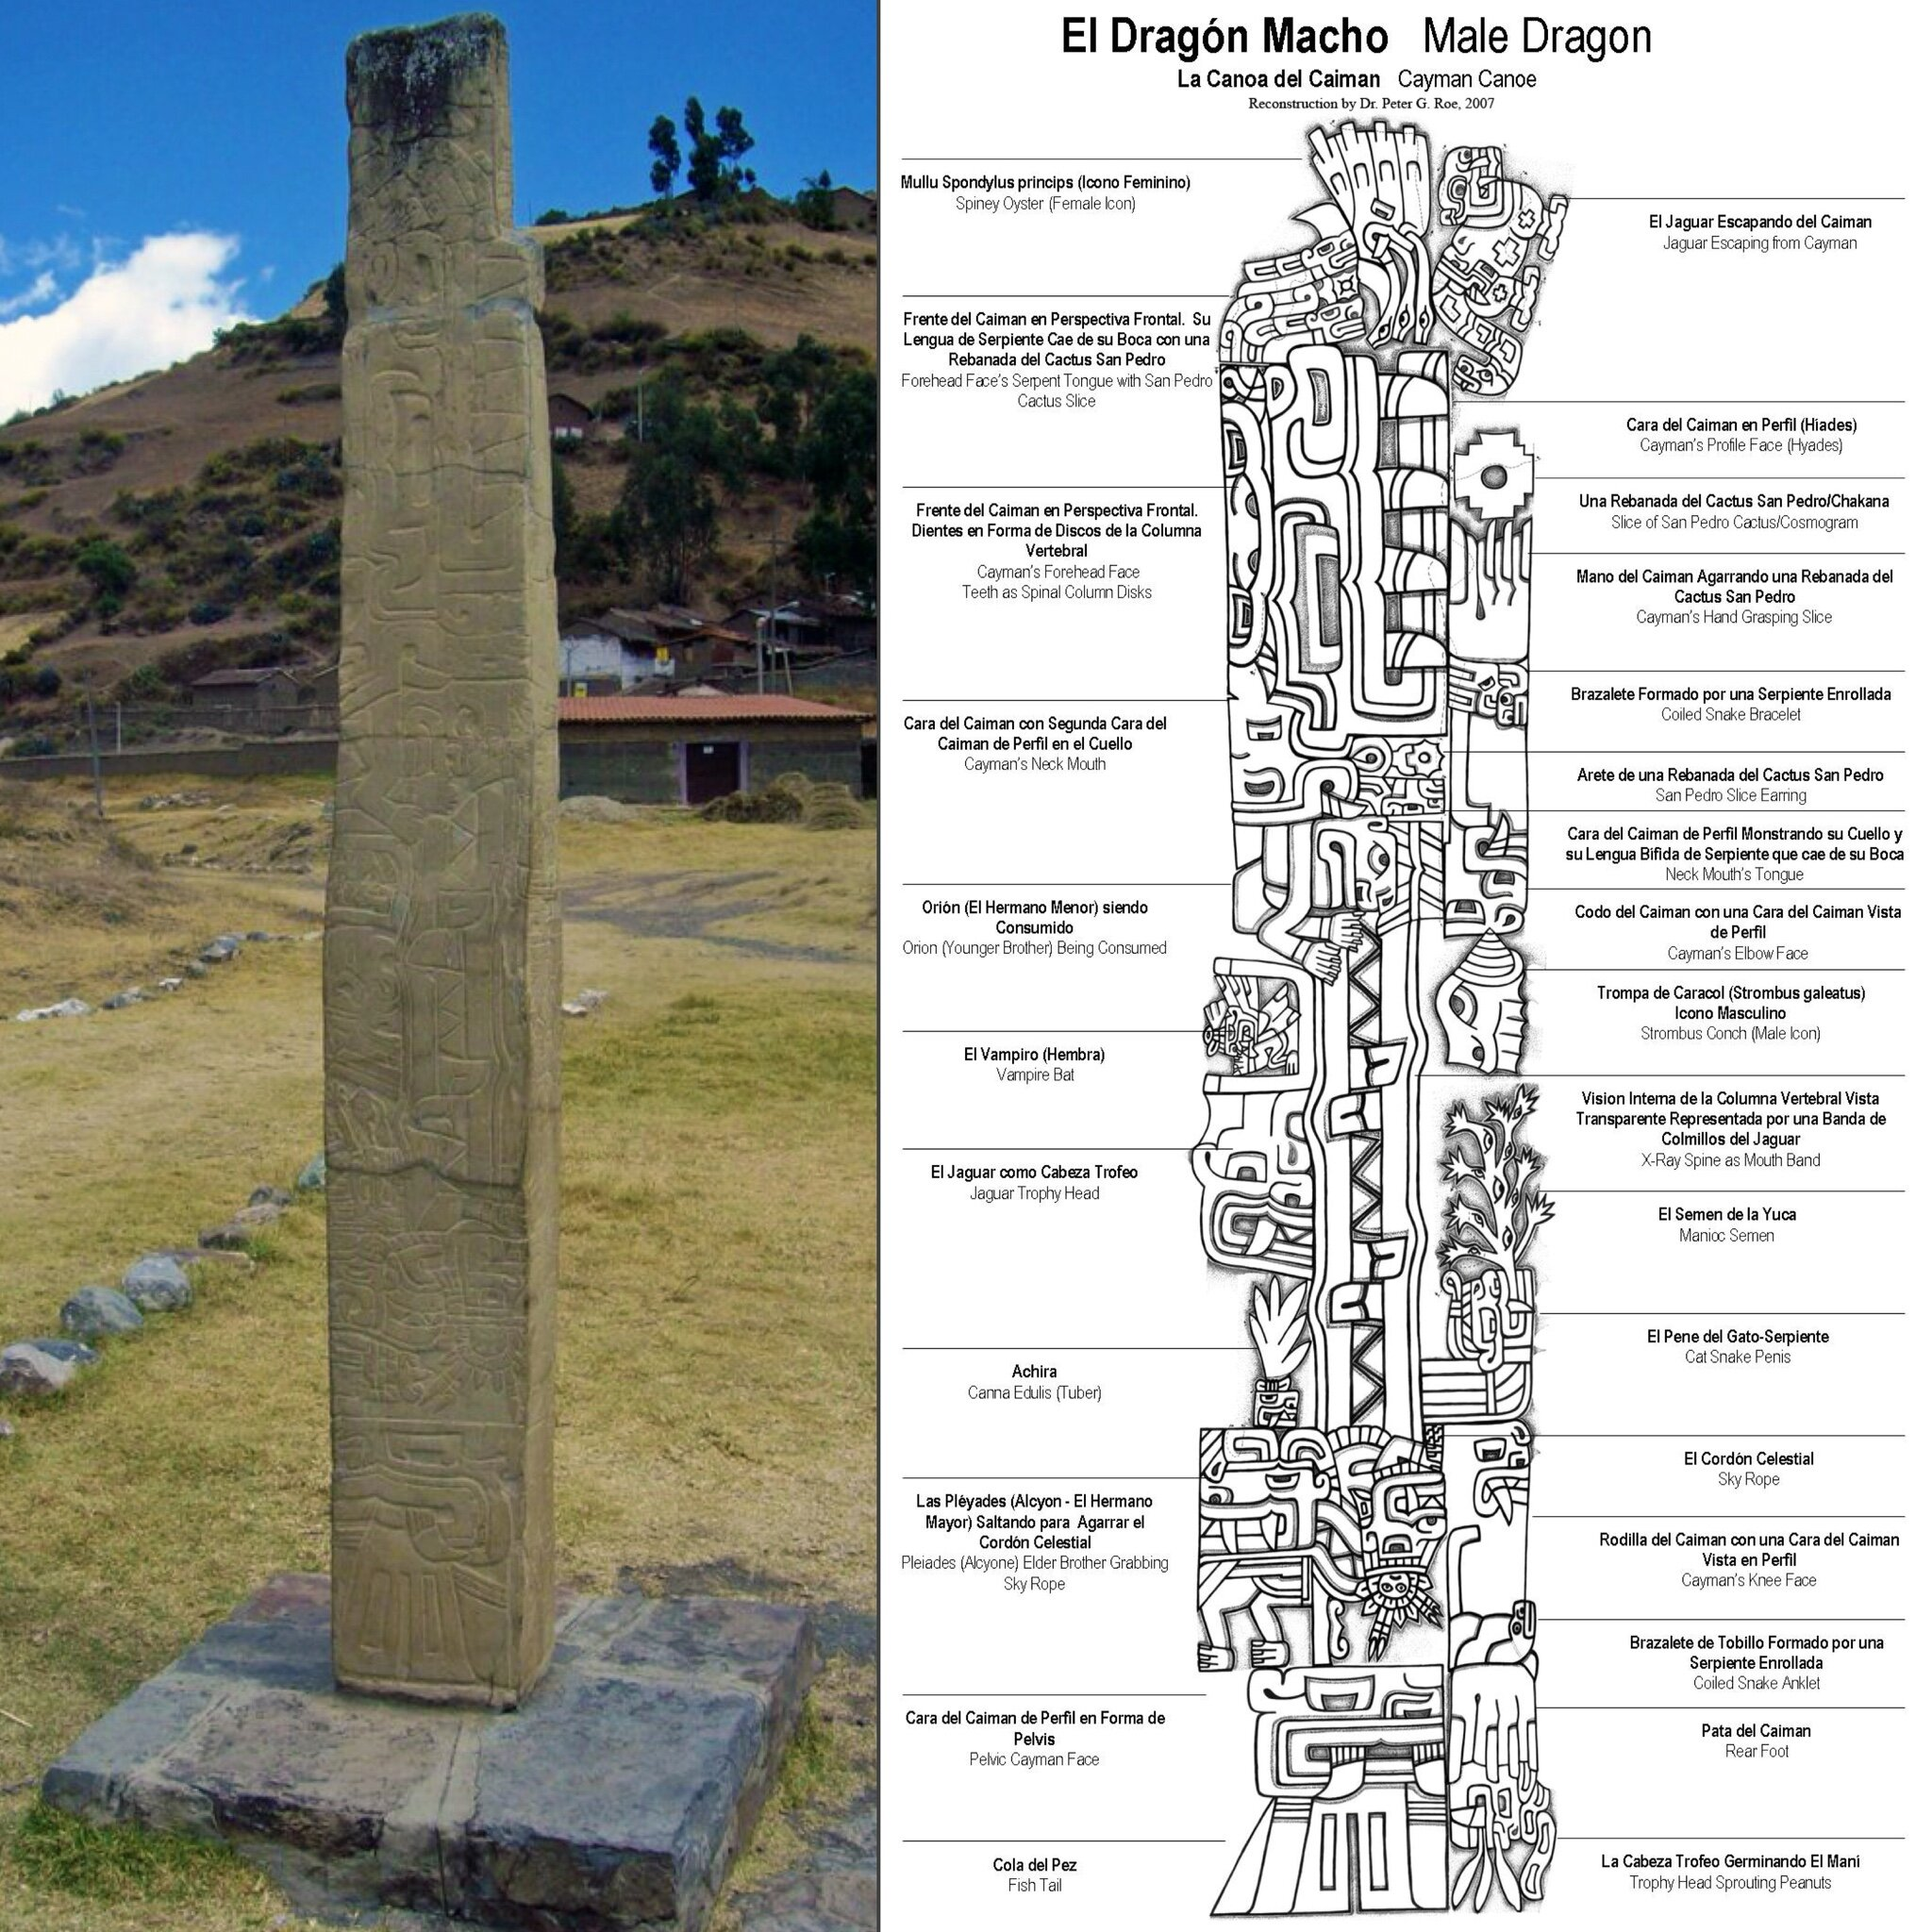 Peter Roe's interpretation of the Tello Obelisk at Chavin de Huantar includes mention of Amazonian species like the caiman, the jaguar, the vampire bat, and cassava. This, found at 3,180 m (10,430 ft.) above sea level.